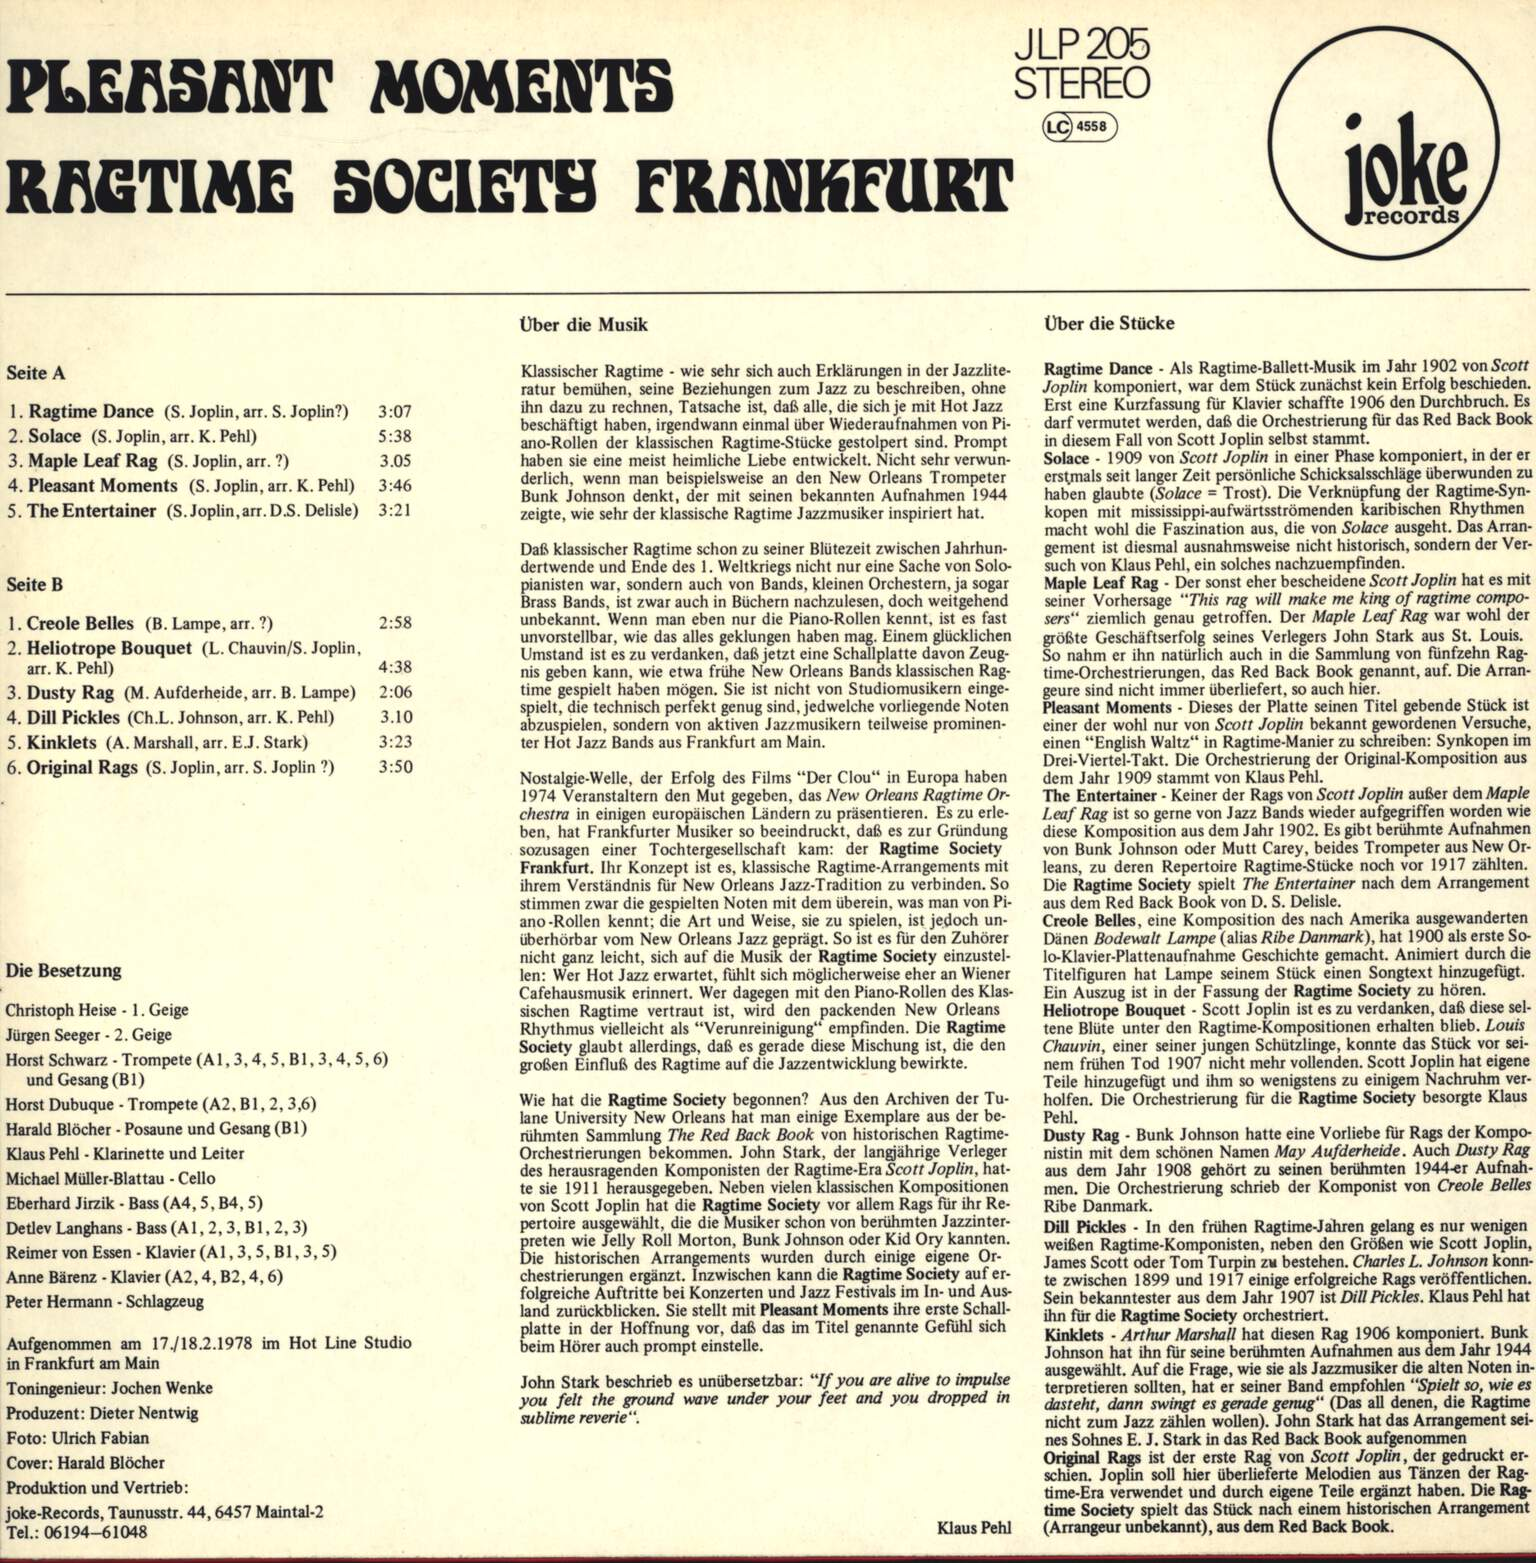 Ragtime Society Frankfurt: Pleasant Moments, LP (Vinyl)